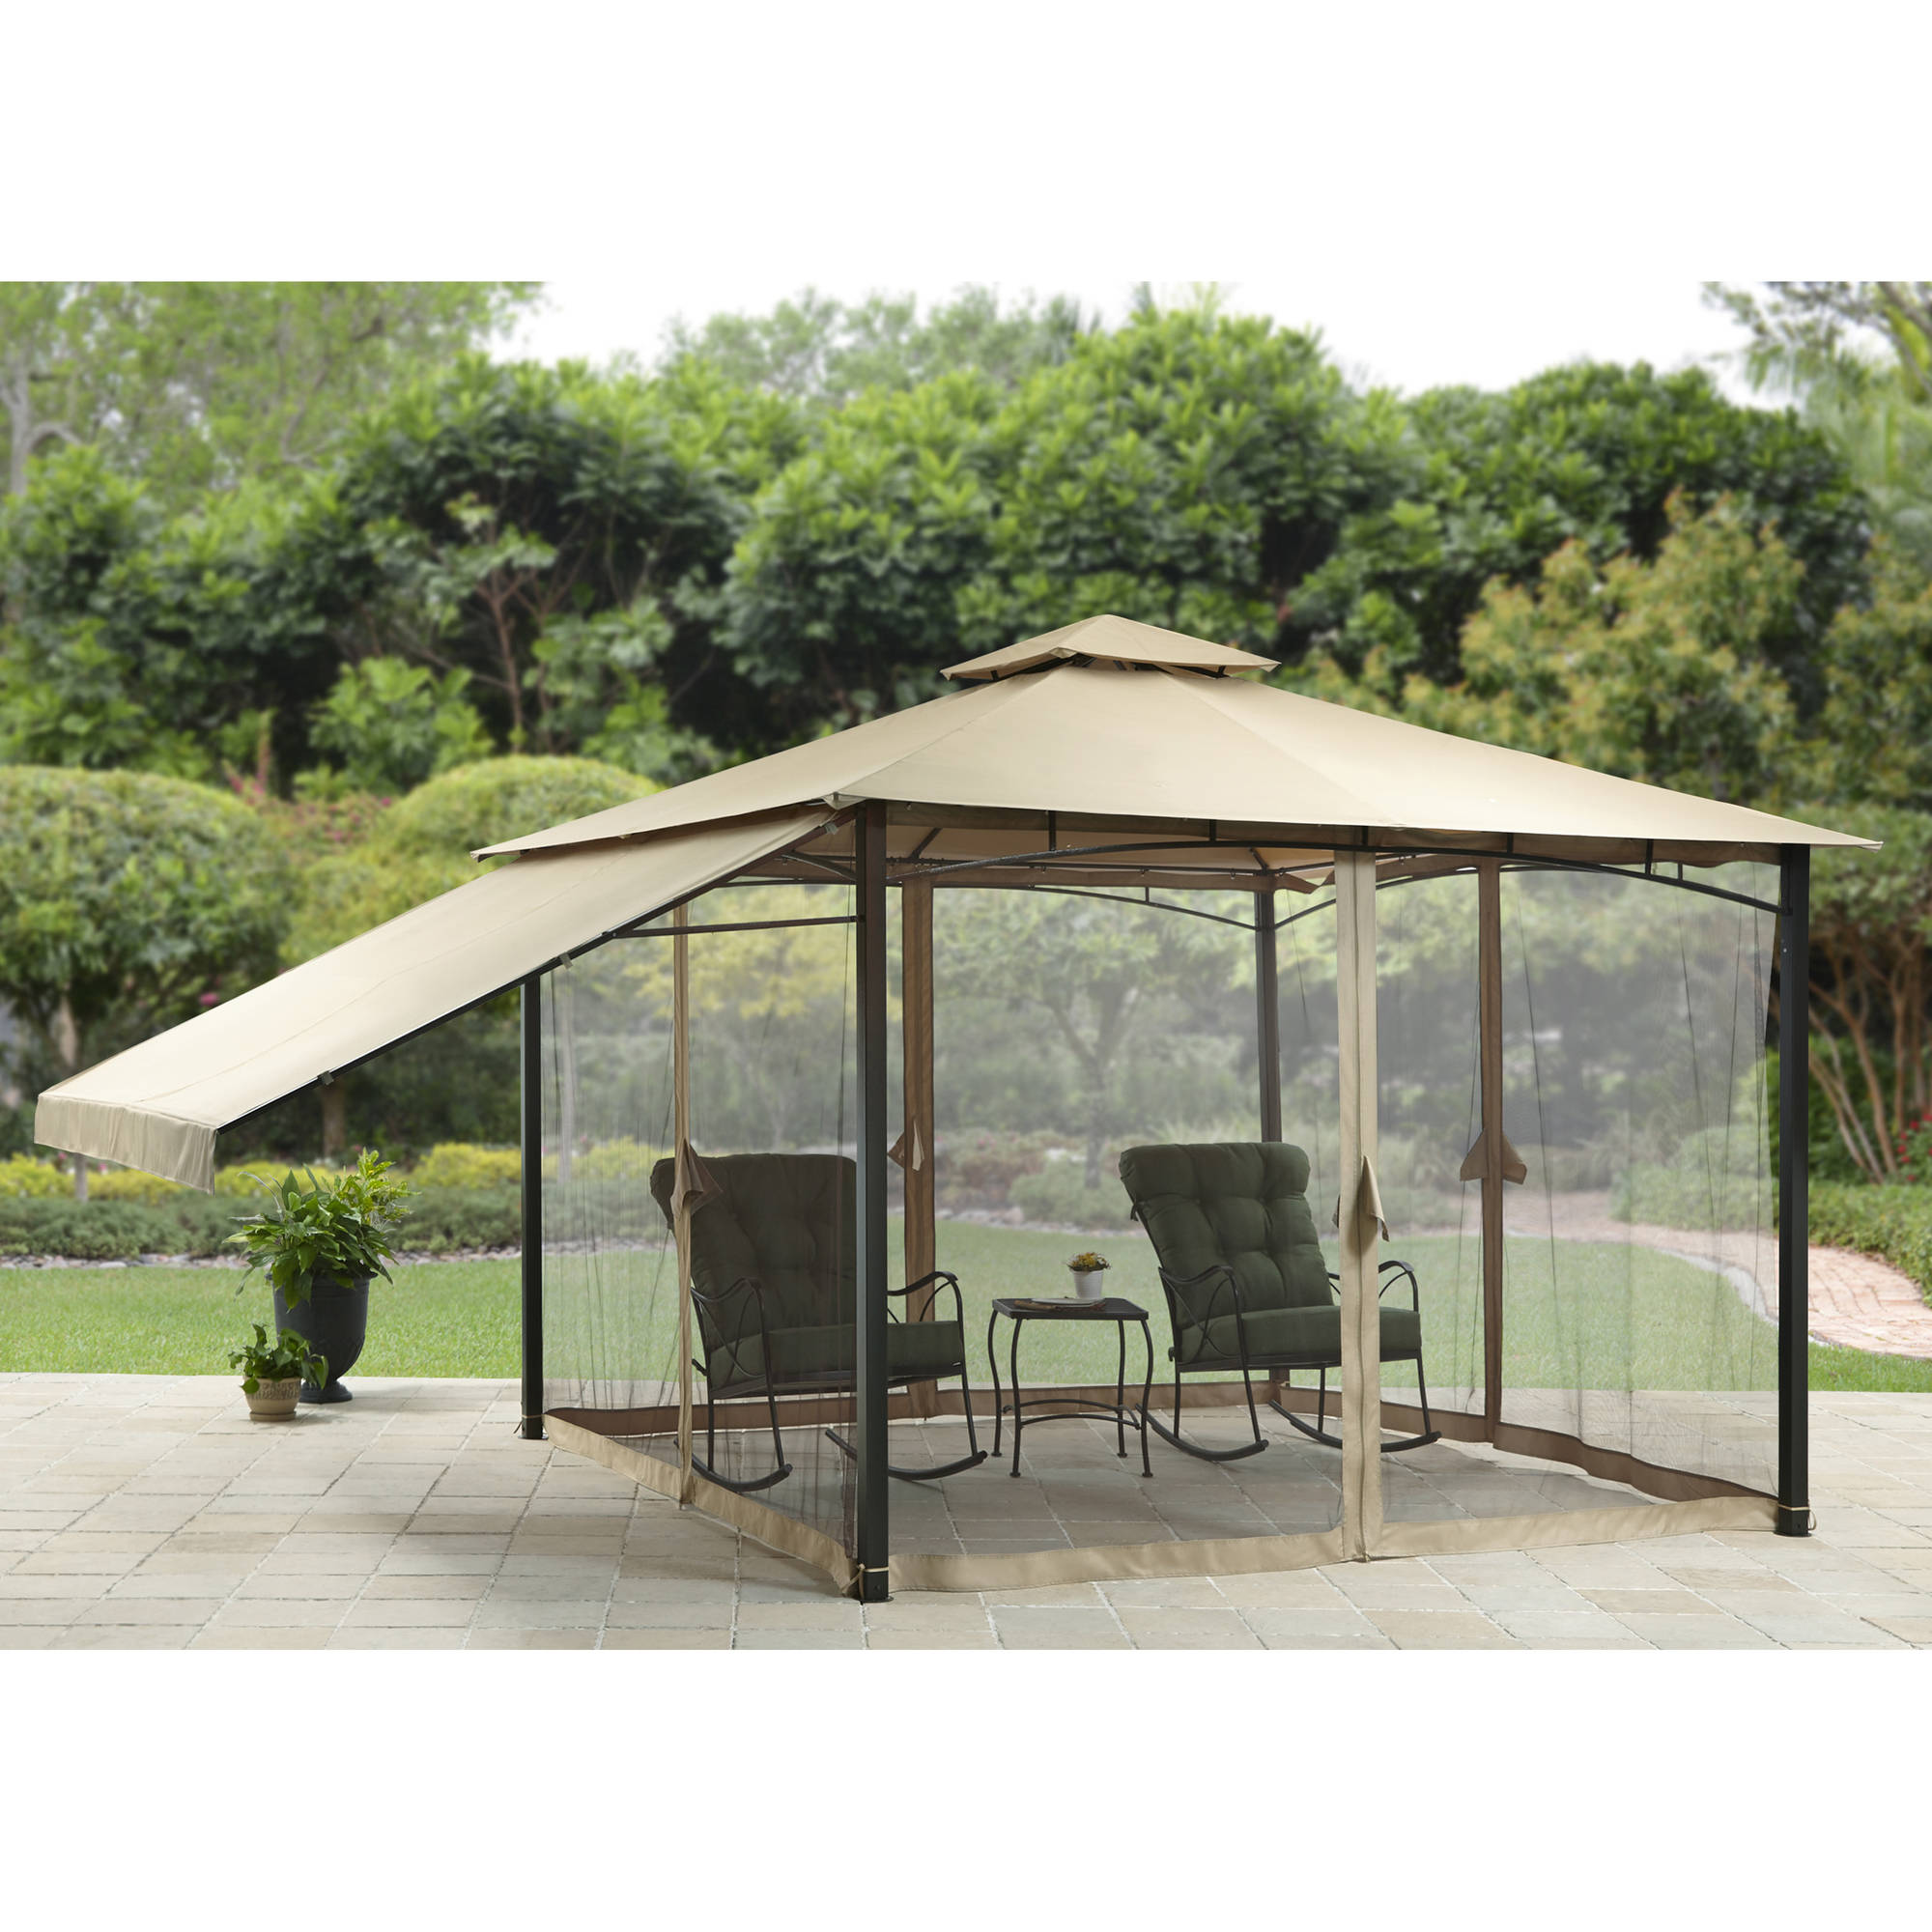 Better Homes and Gardens Canal Drive 11' x 11' Outdoor Cabin Style Gazebo with Adjustable Side